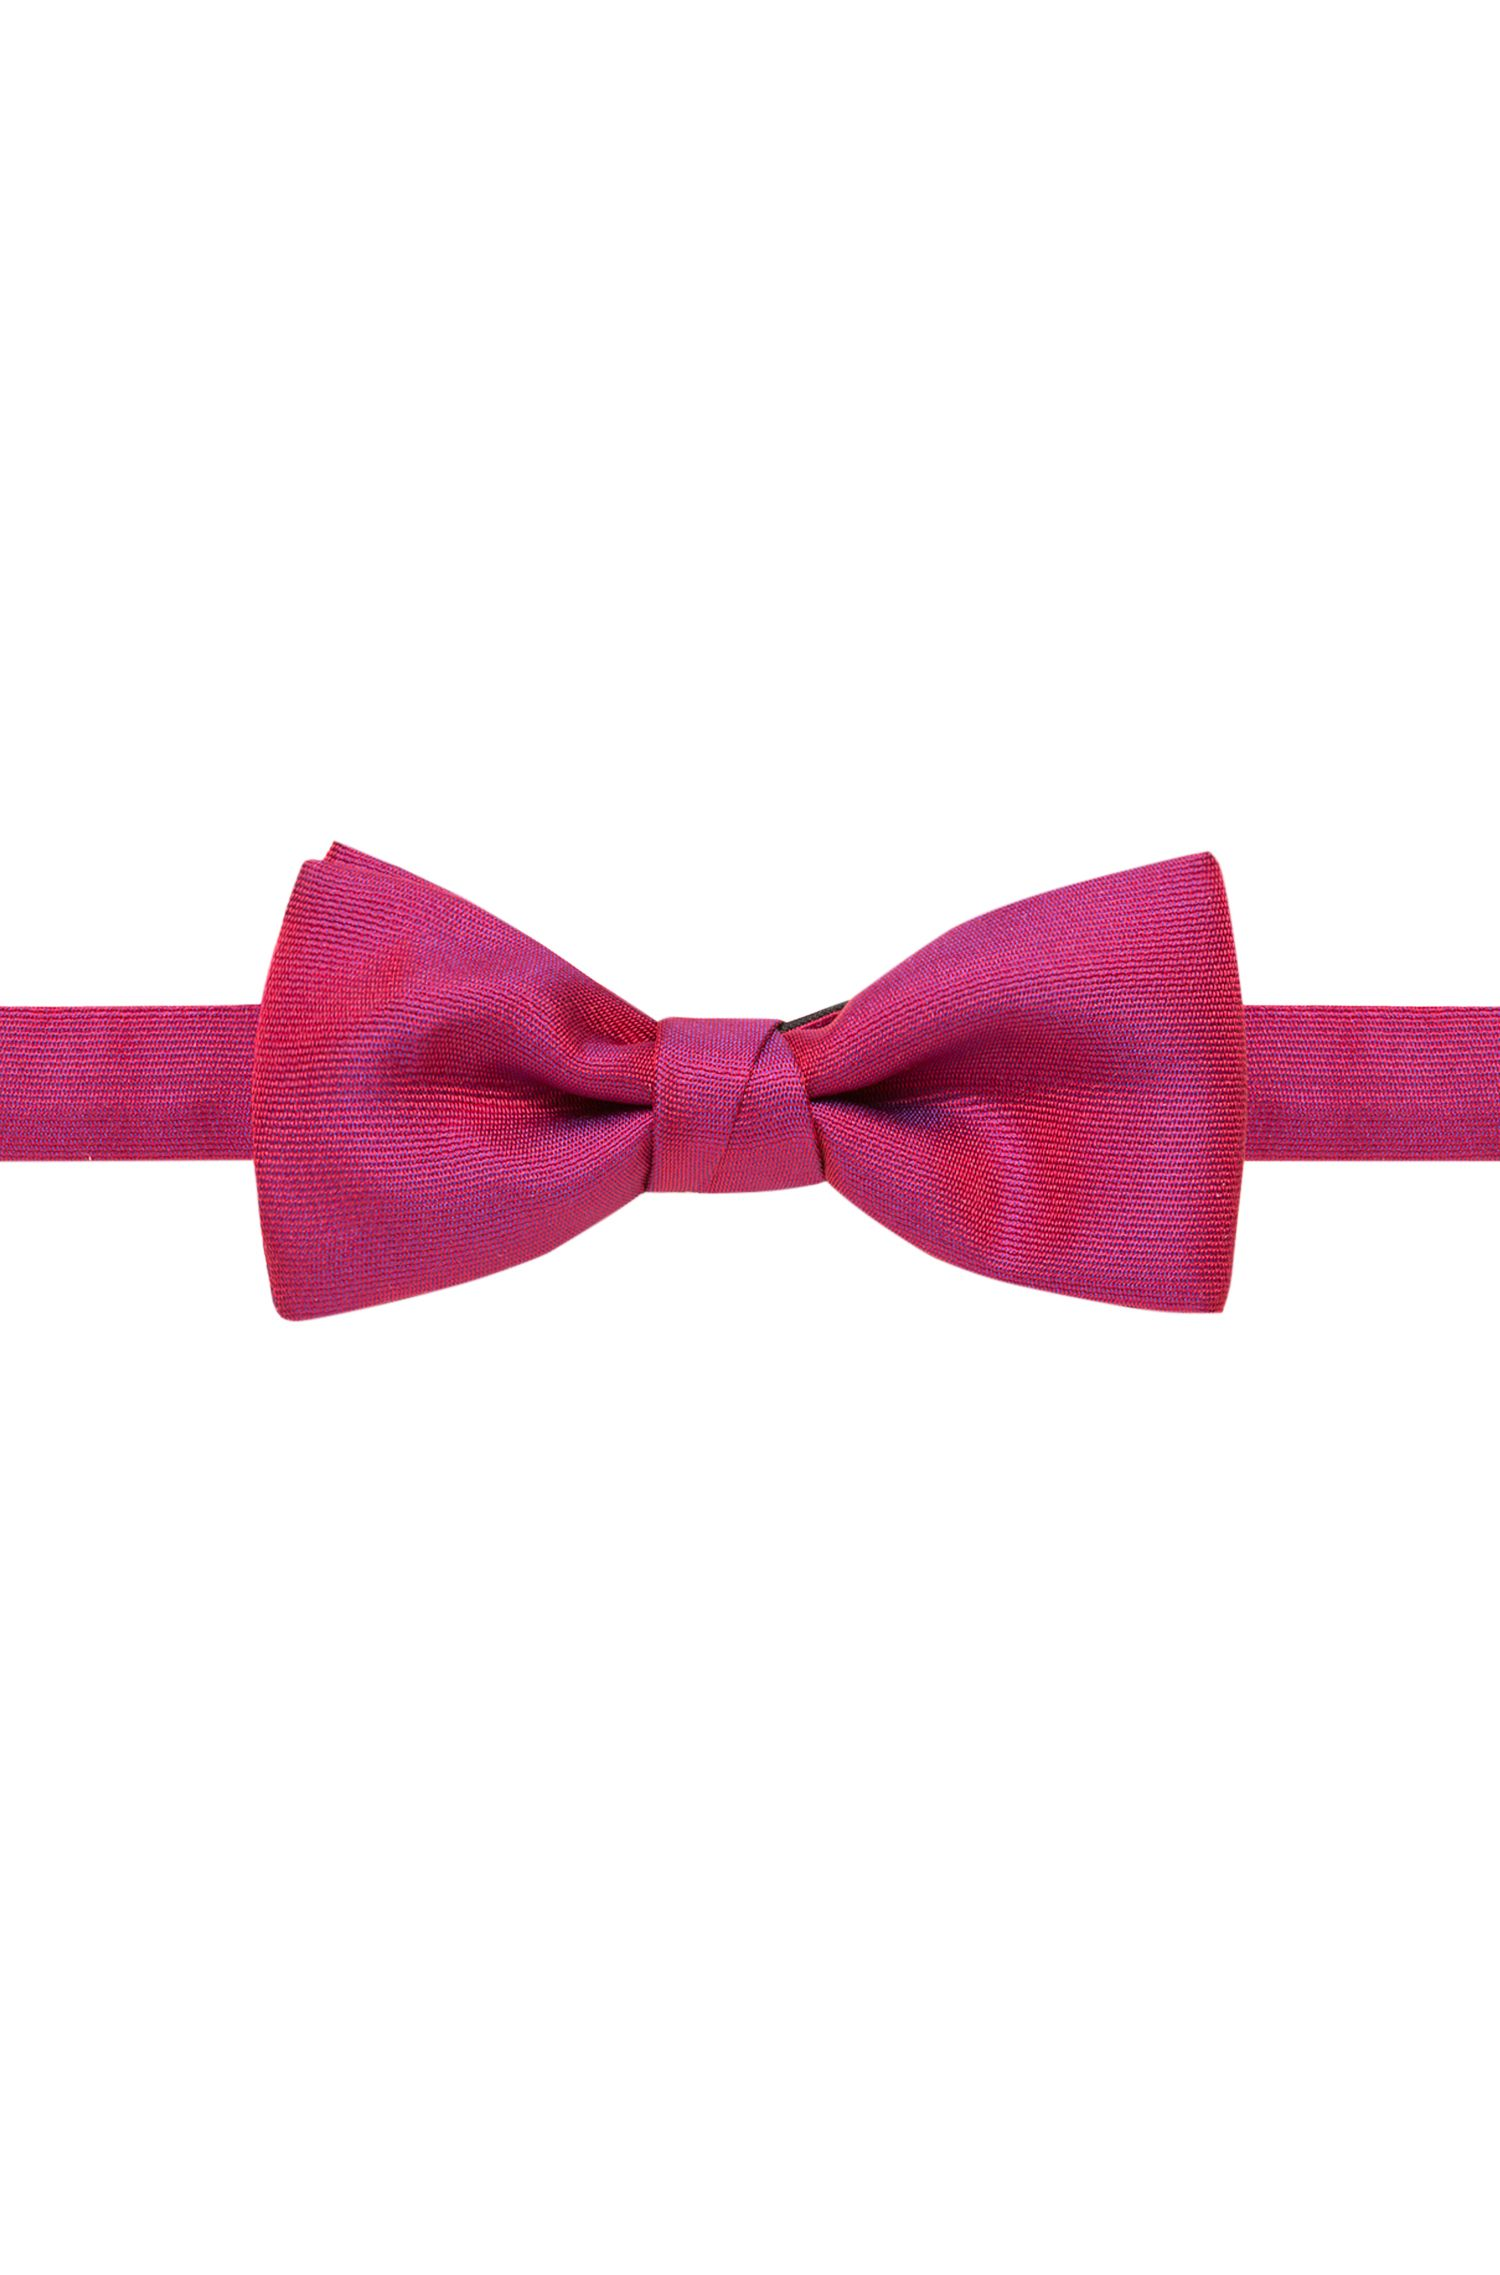 Silk-blend bow tie in a textured weave